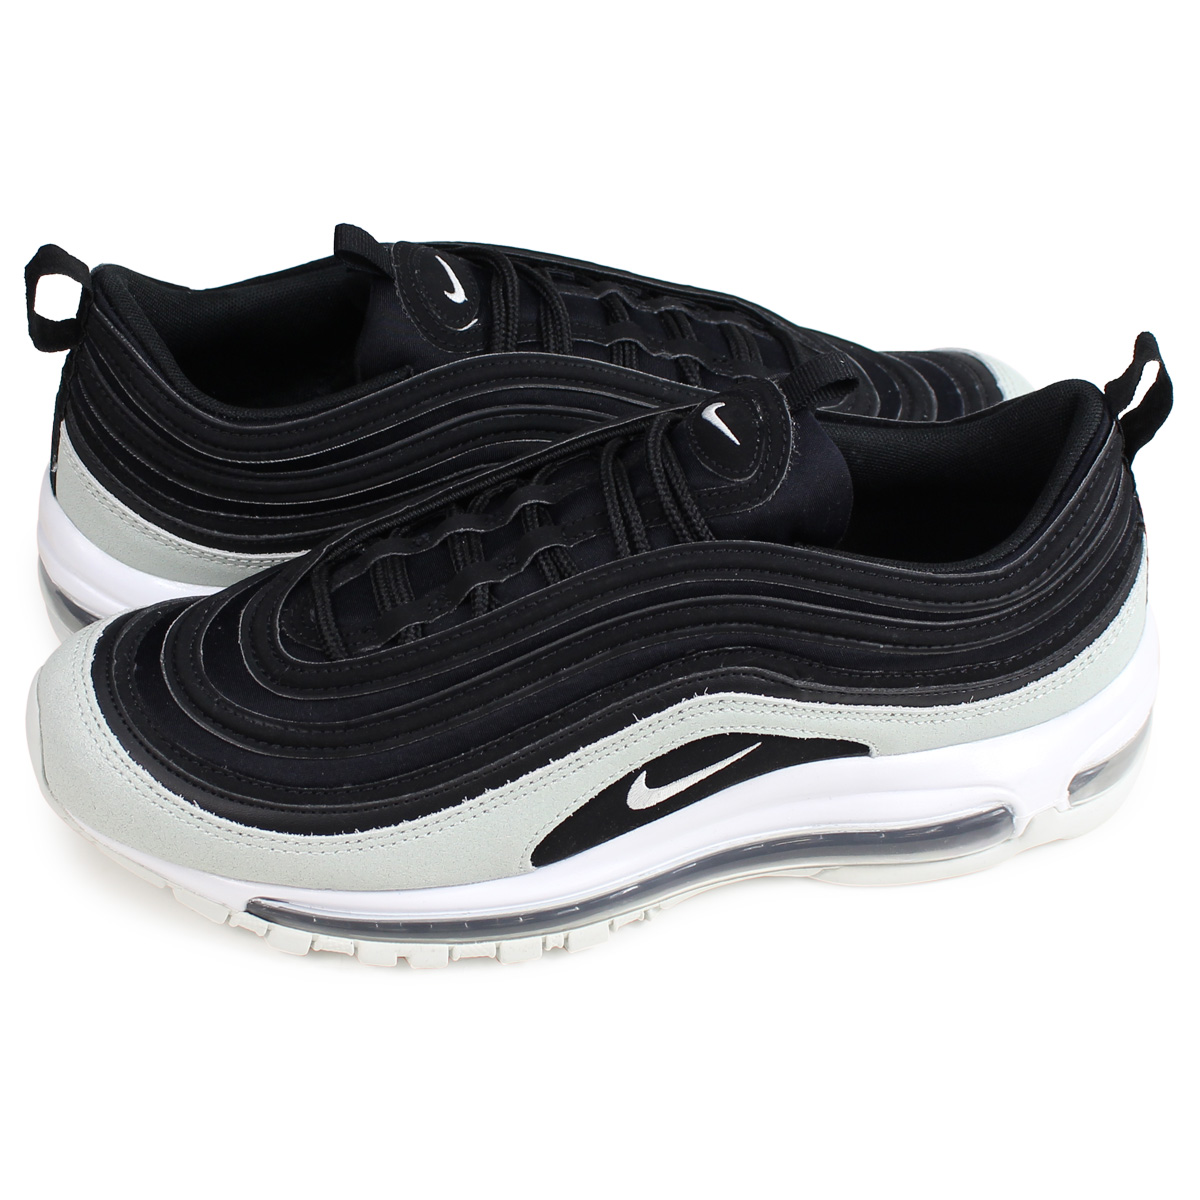 brand new 910c4 fcee1 Nike NIKE Air Max 97 sneakers Lady s men WMNS AIR MAX 97 PREMIUM black  917,646-007  load planned Shinnyu load in reservation product 2 14  containing   191